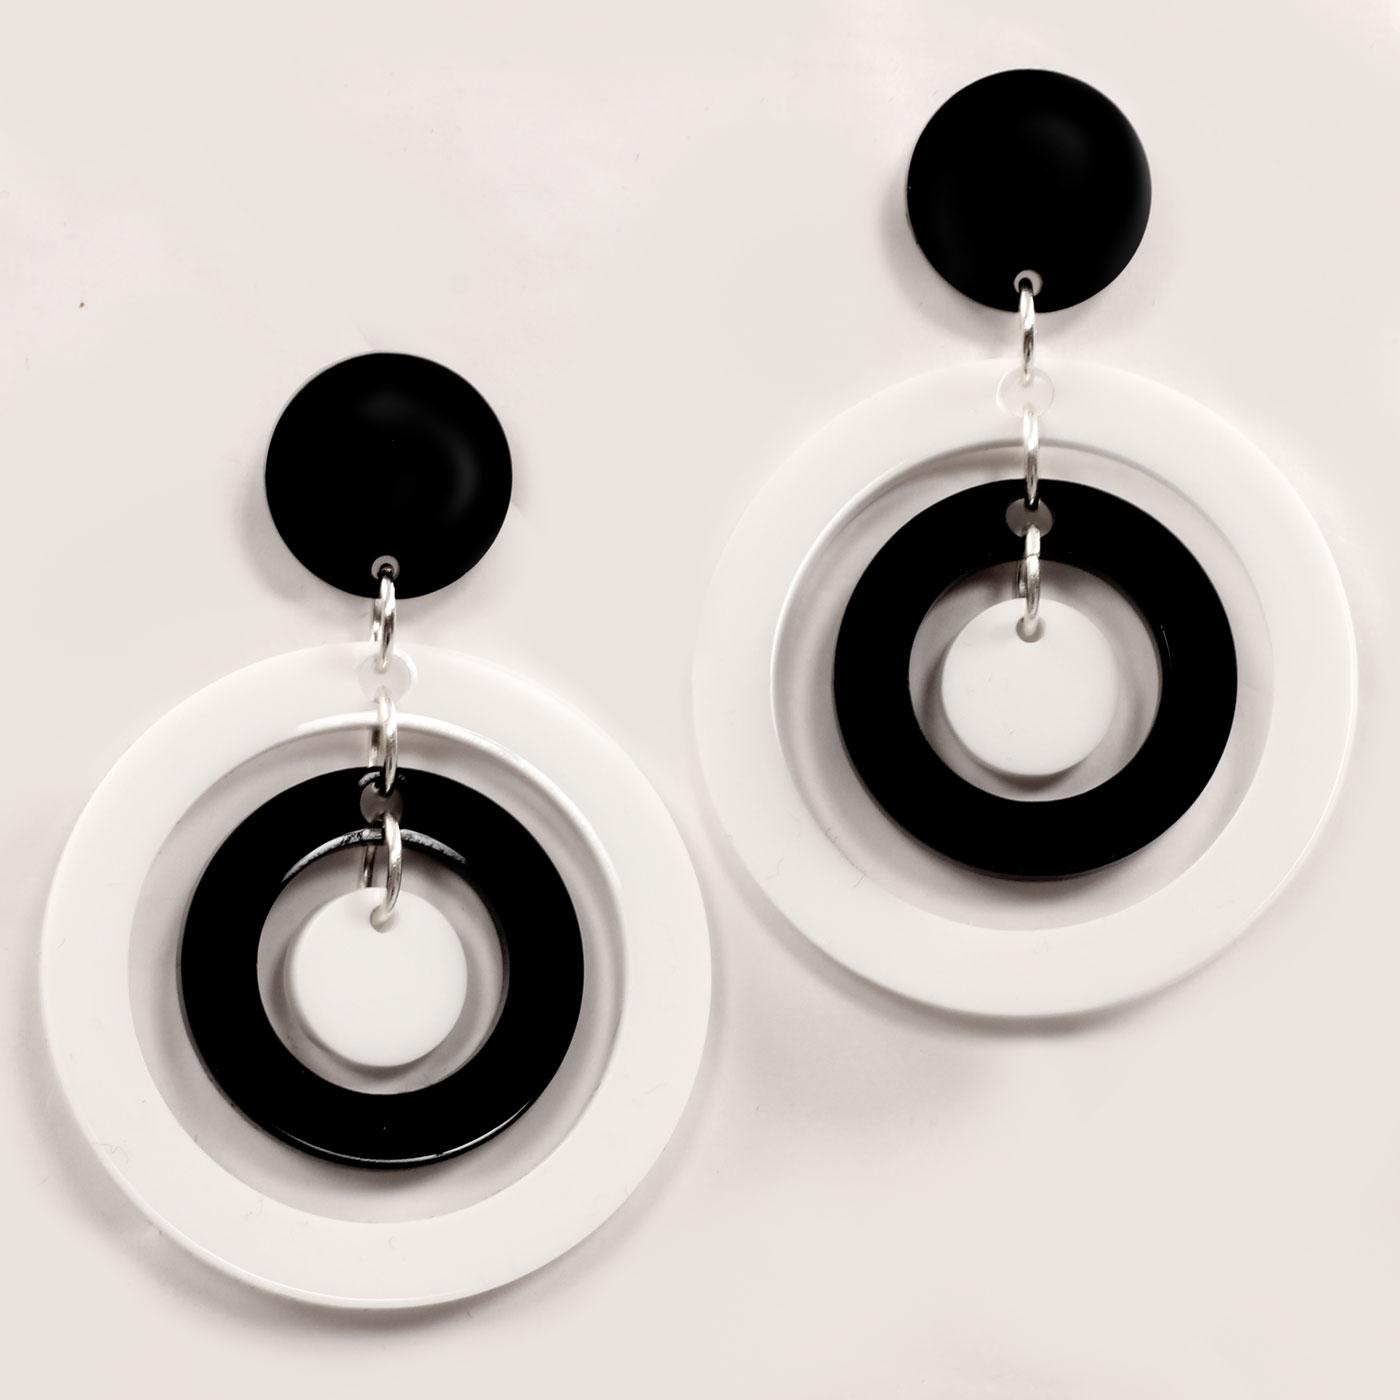 Ada Binks for Madcap England 60s Mod Concentric Circles Earrings in white